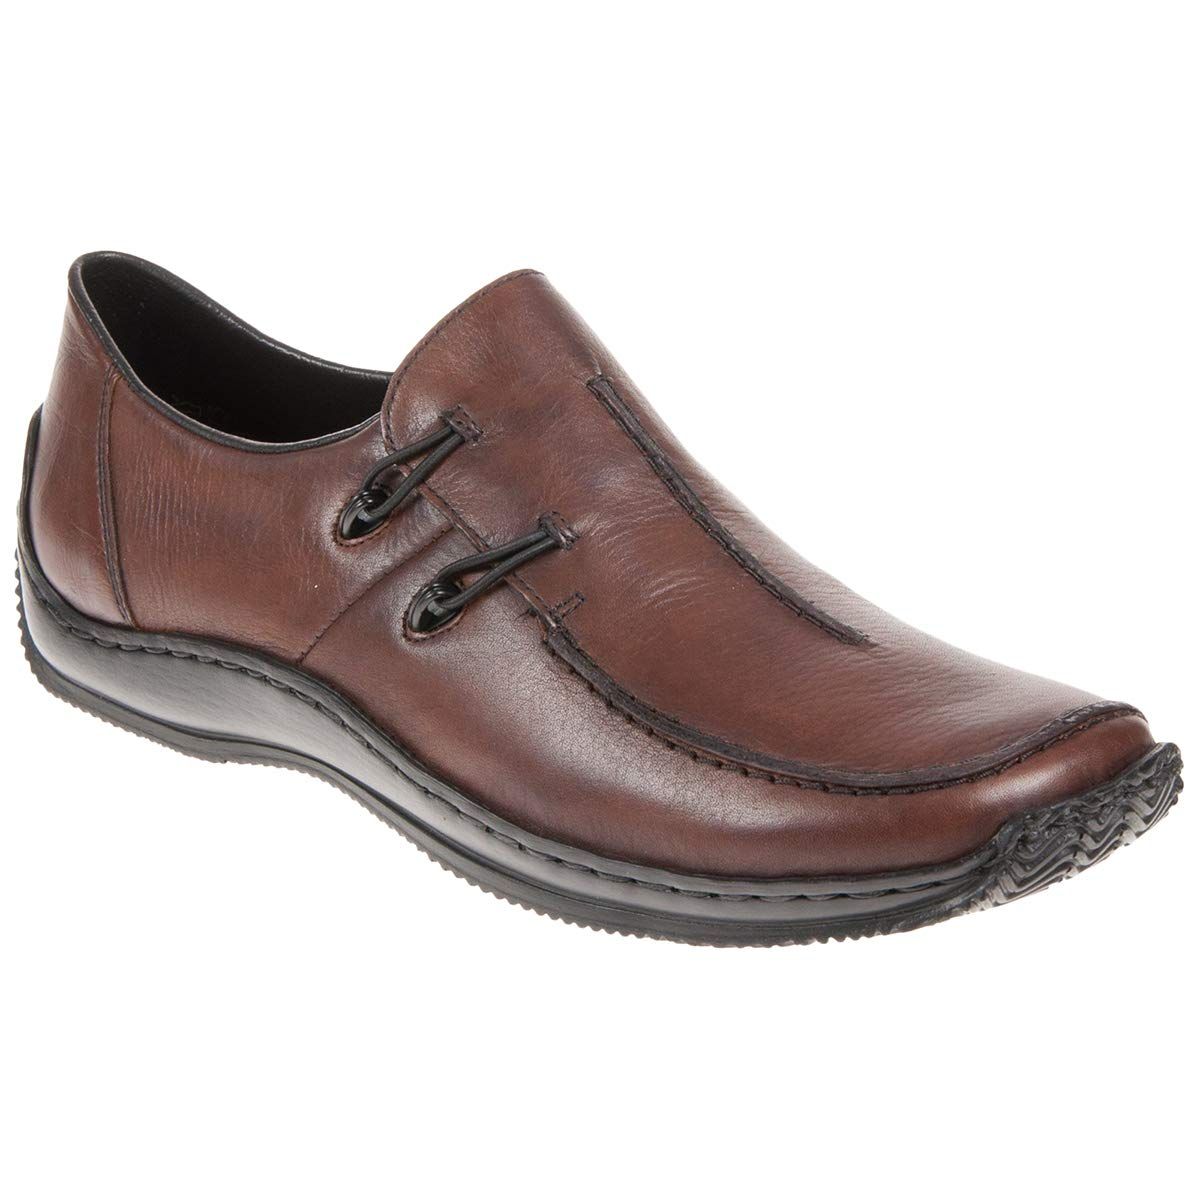 Rieker Womens L1751 25 Leather Brown Shoes 9.5 US